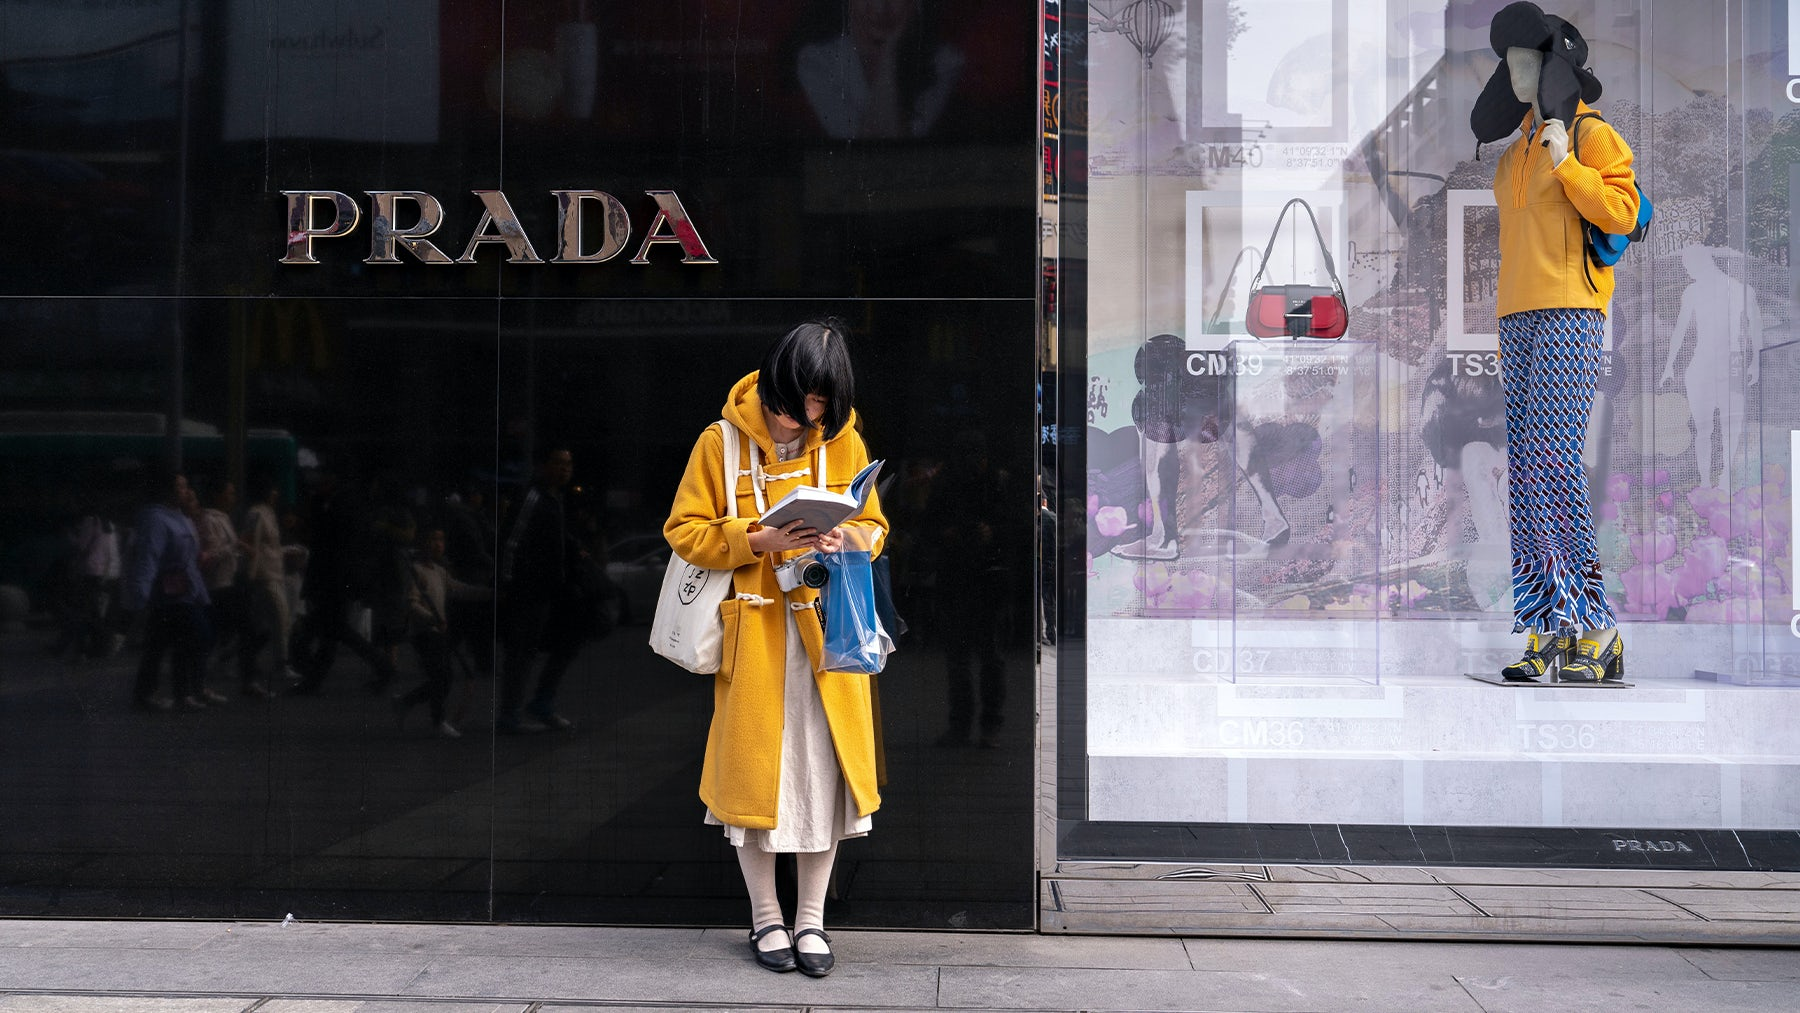 August retail sales in China were lacklustre, largely due to new Covid-19 fallout. Shutterstock.